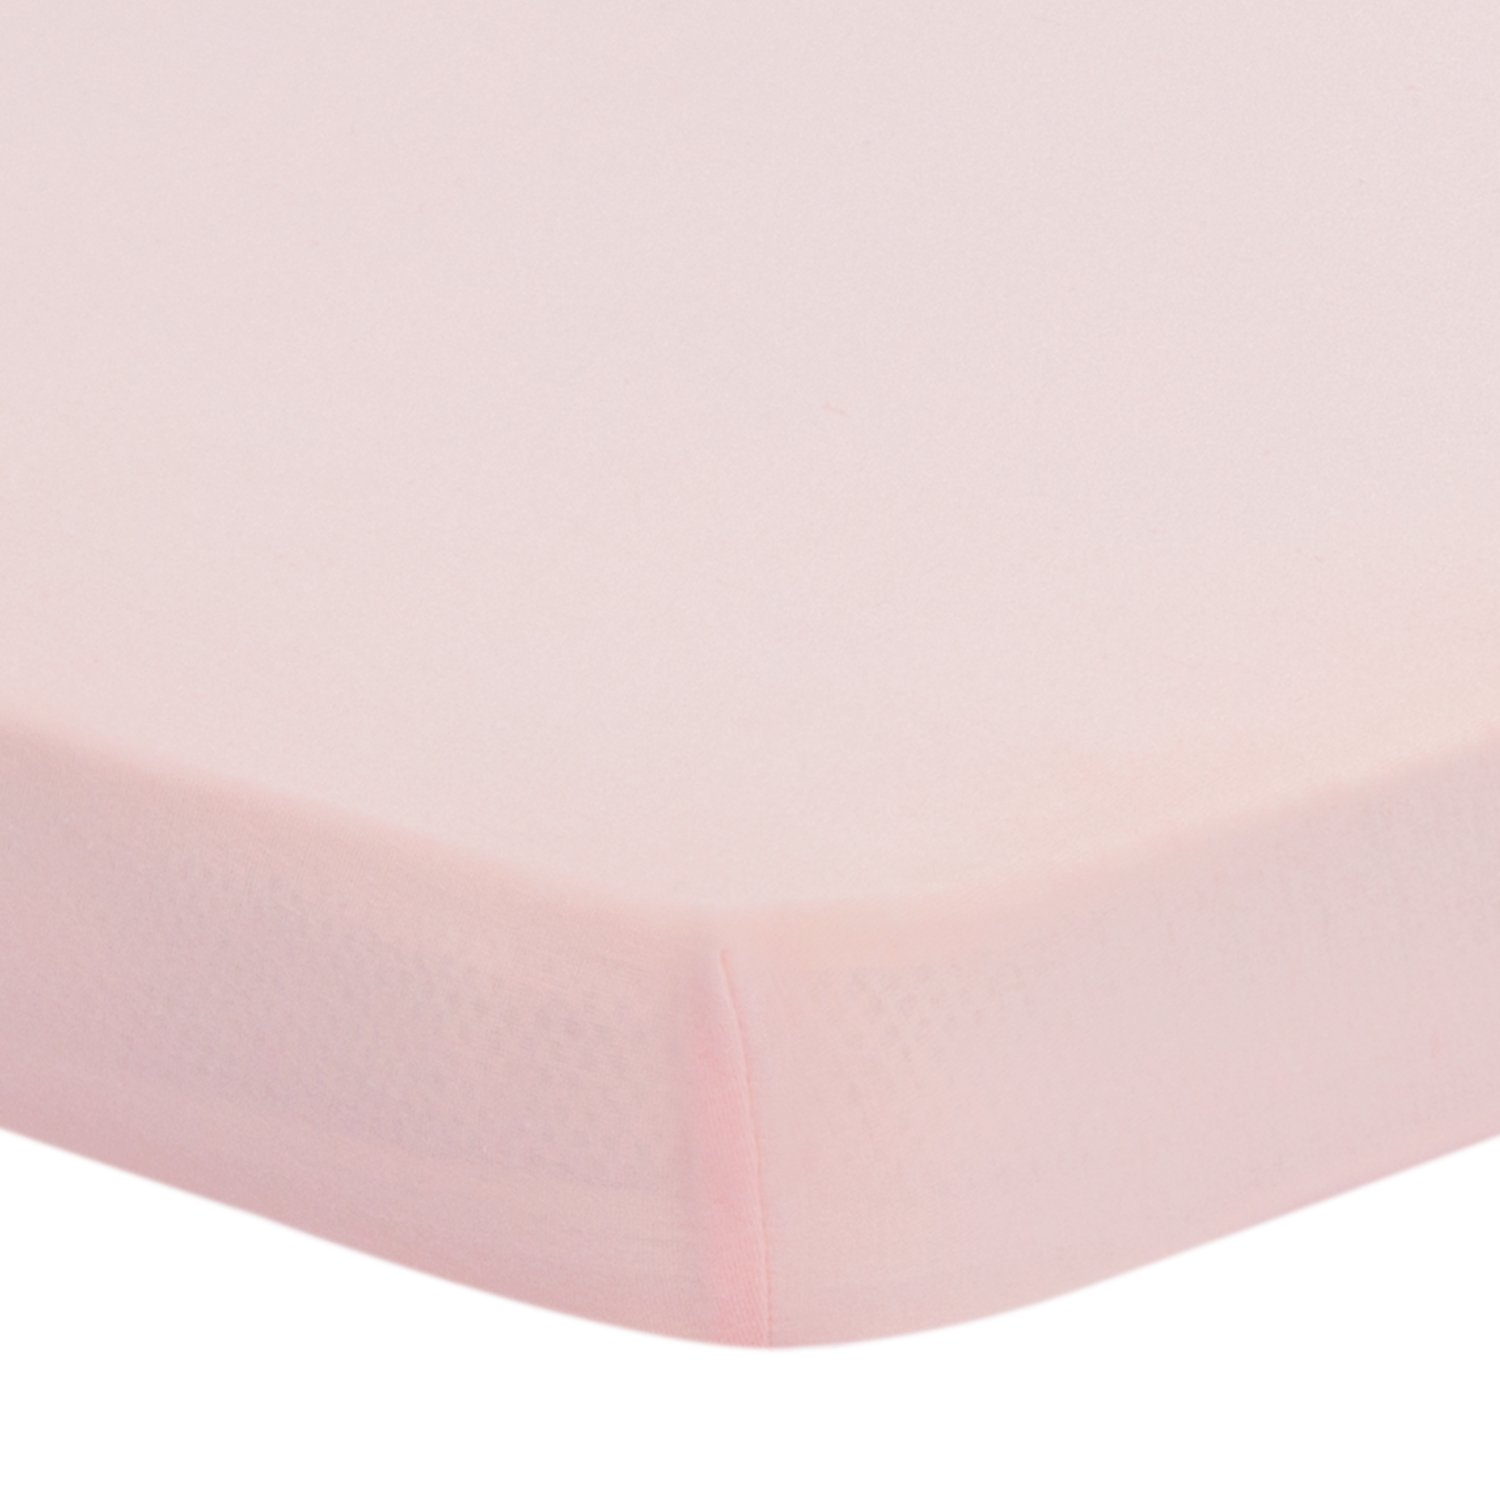 TILLYOU Jersey Knit Pack N Play Sheet Fitted, Portable Mini Crib Sheets, Ultra-Soft Breathable Playard Mattress Sheets, 27'' x 39'' x 5'', Peachy Pink